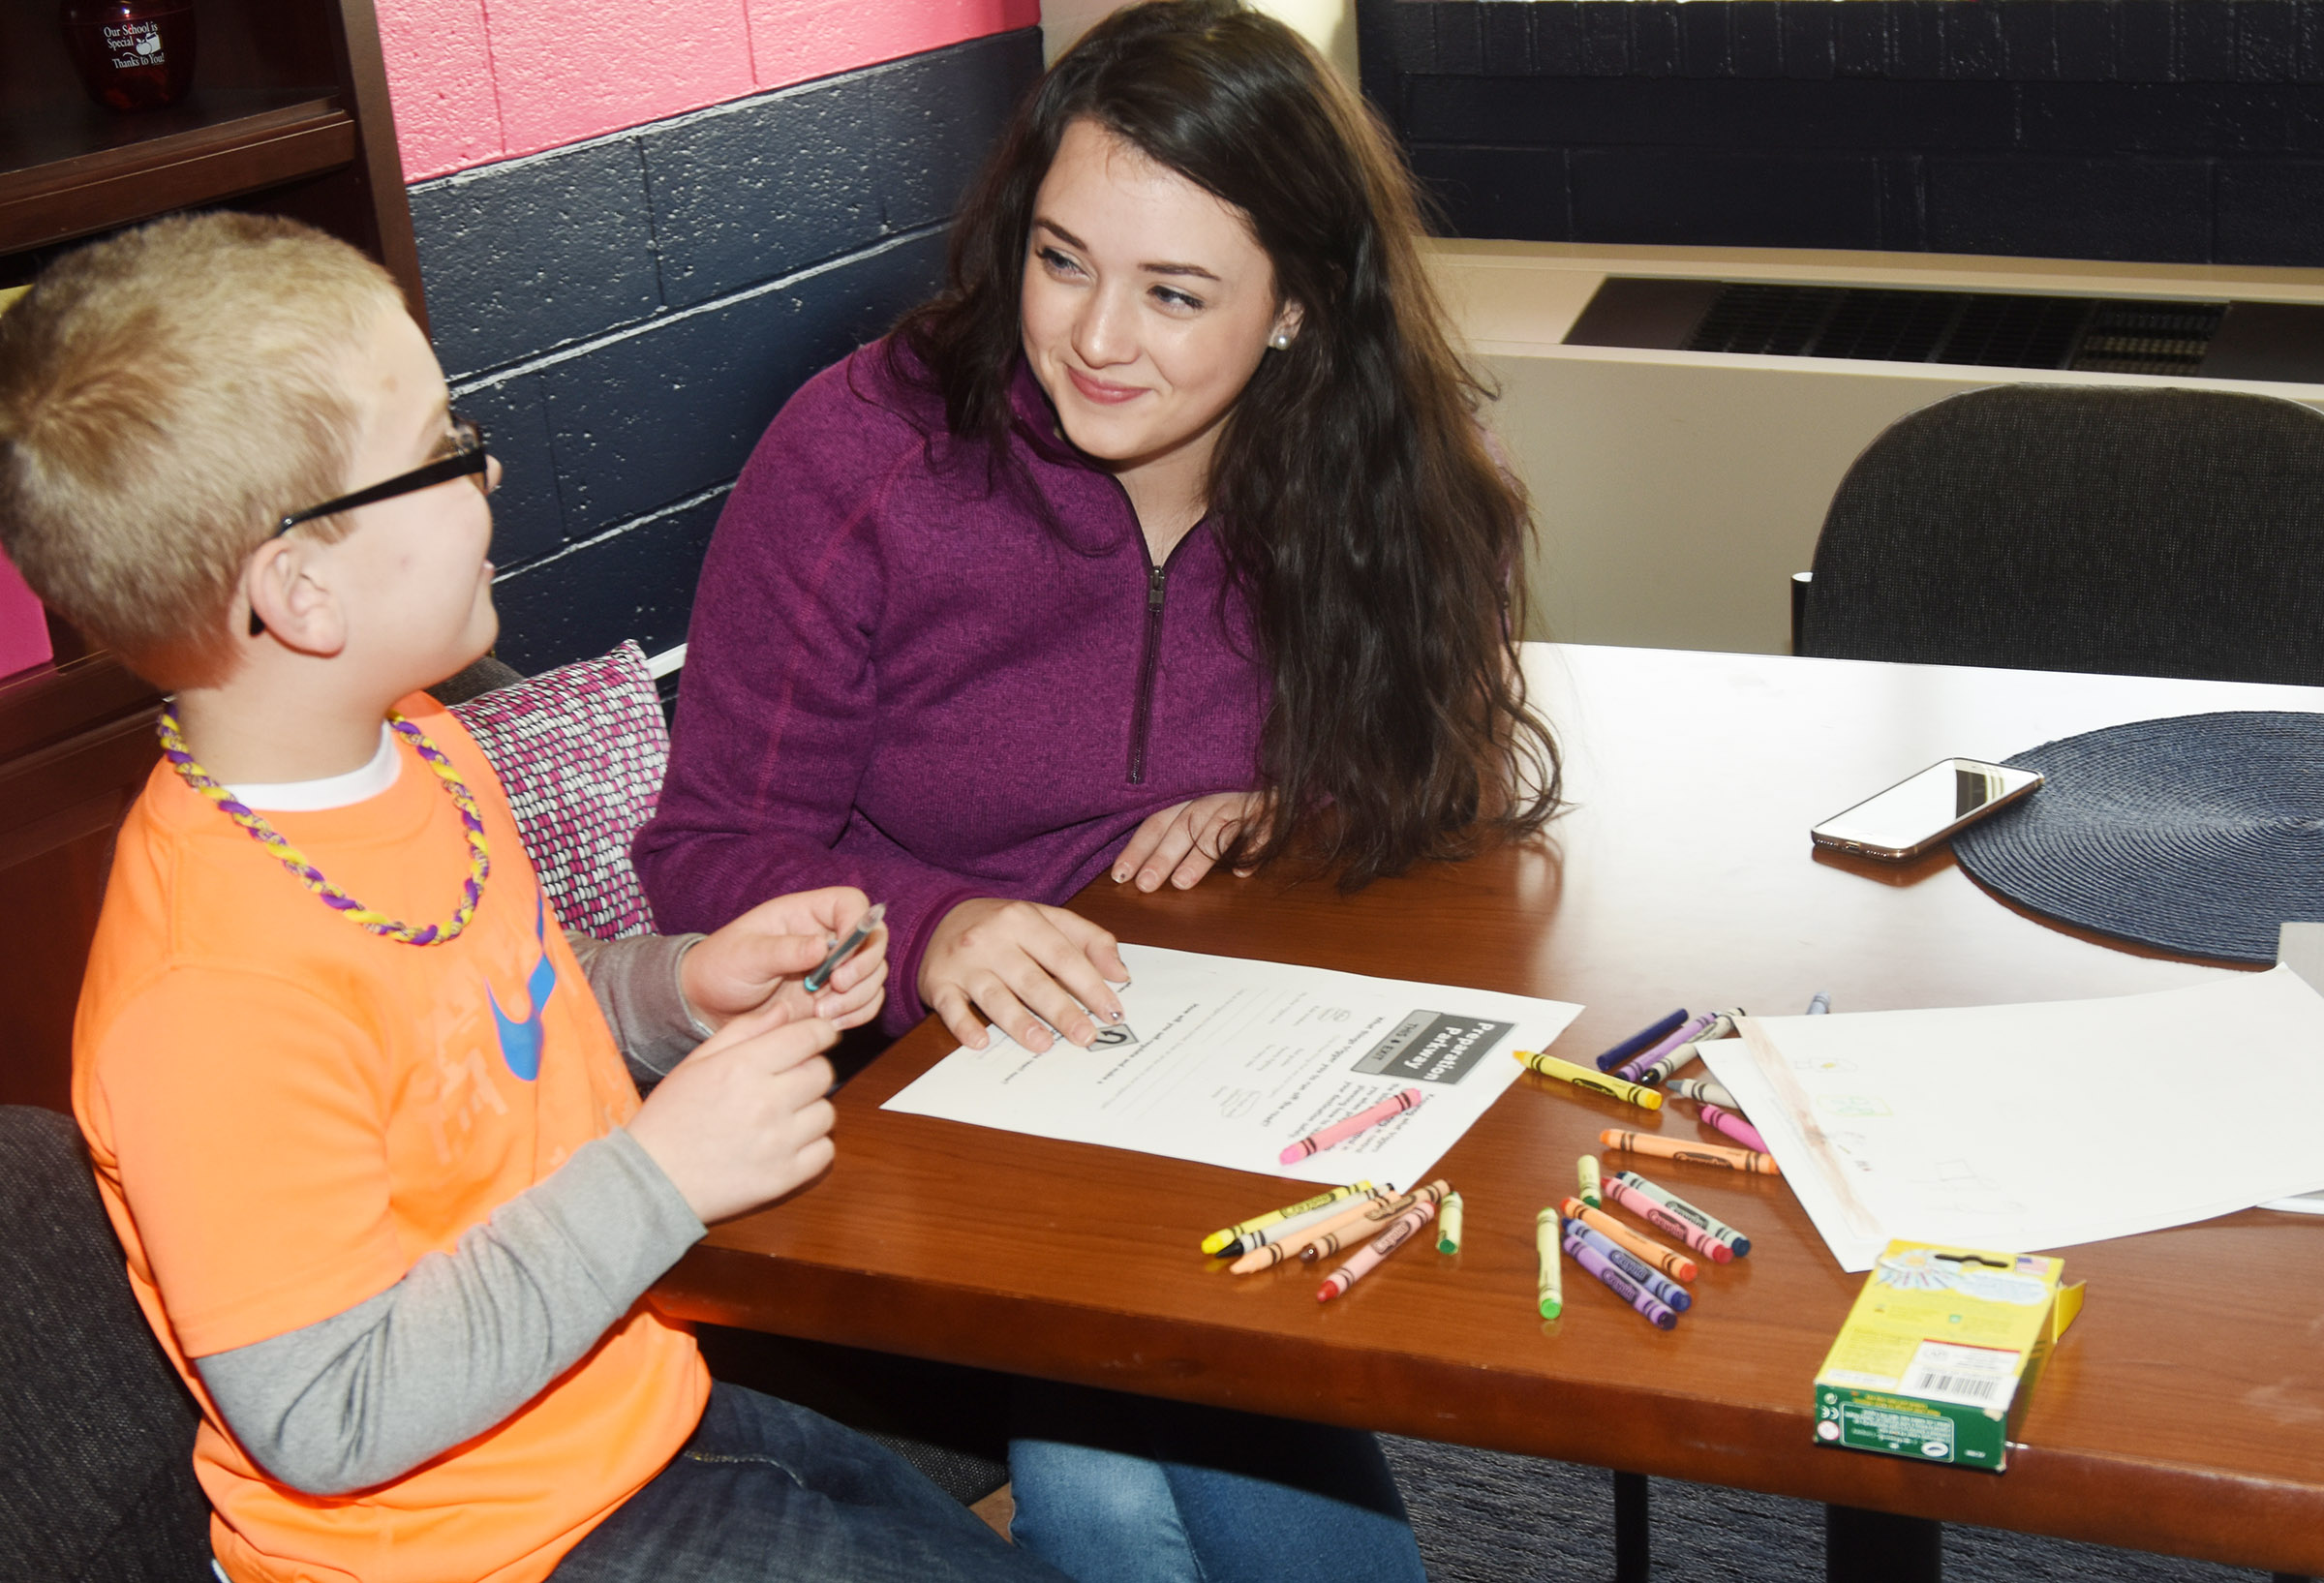 CHS senior Missy Vanorder talks to CES second-grader Ethan Bailey about the importance of doing well in school. Vanorder is completing an internship with Beth Wiedewitsch, who is a guidance counselor at Campbellsville elementary and middle schools.